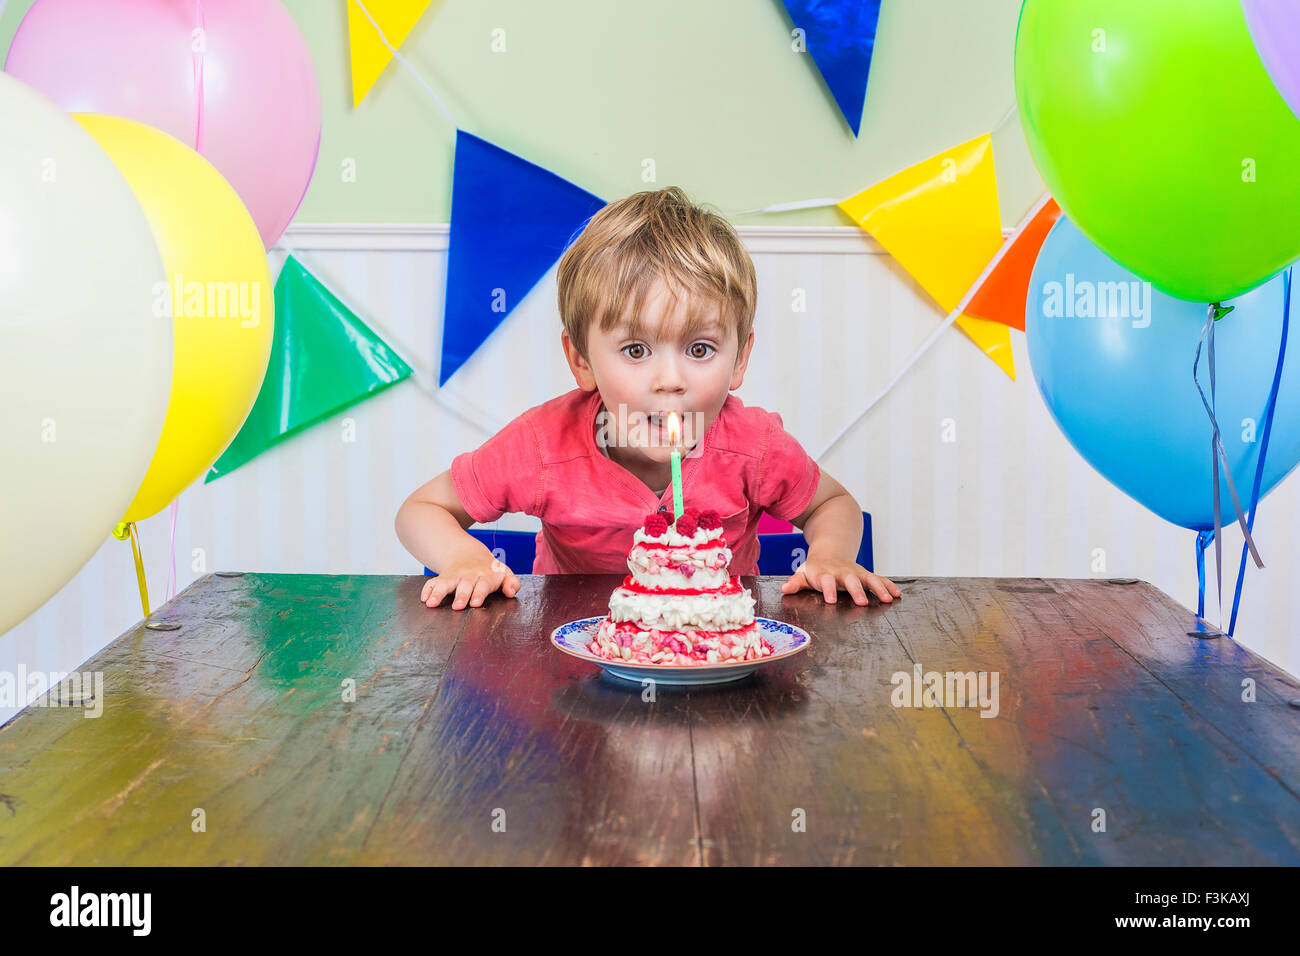 Adorable kid blowing out the candle on his birthday cake - Stock Image